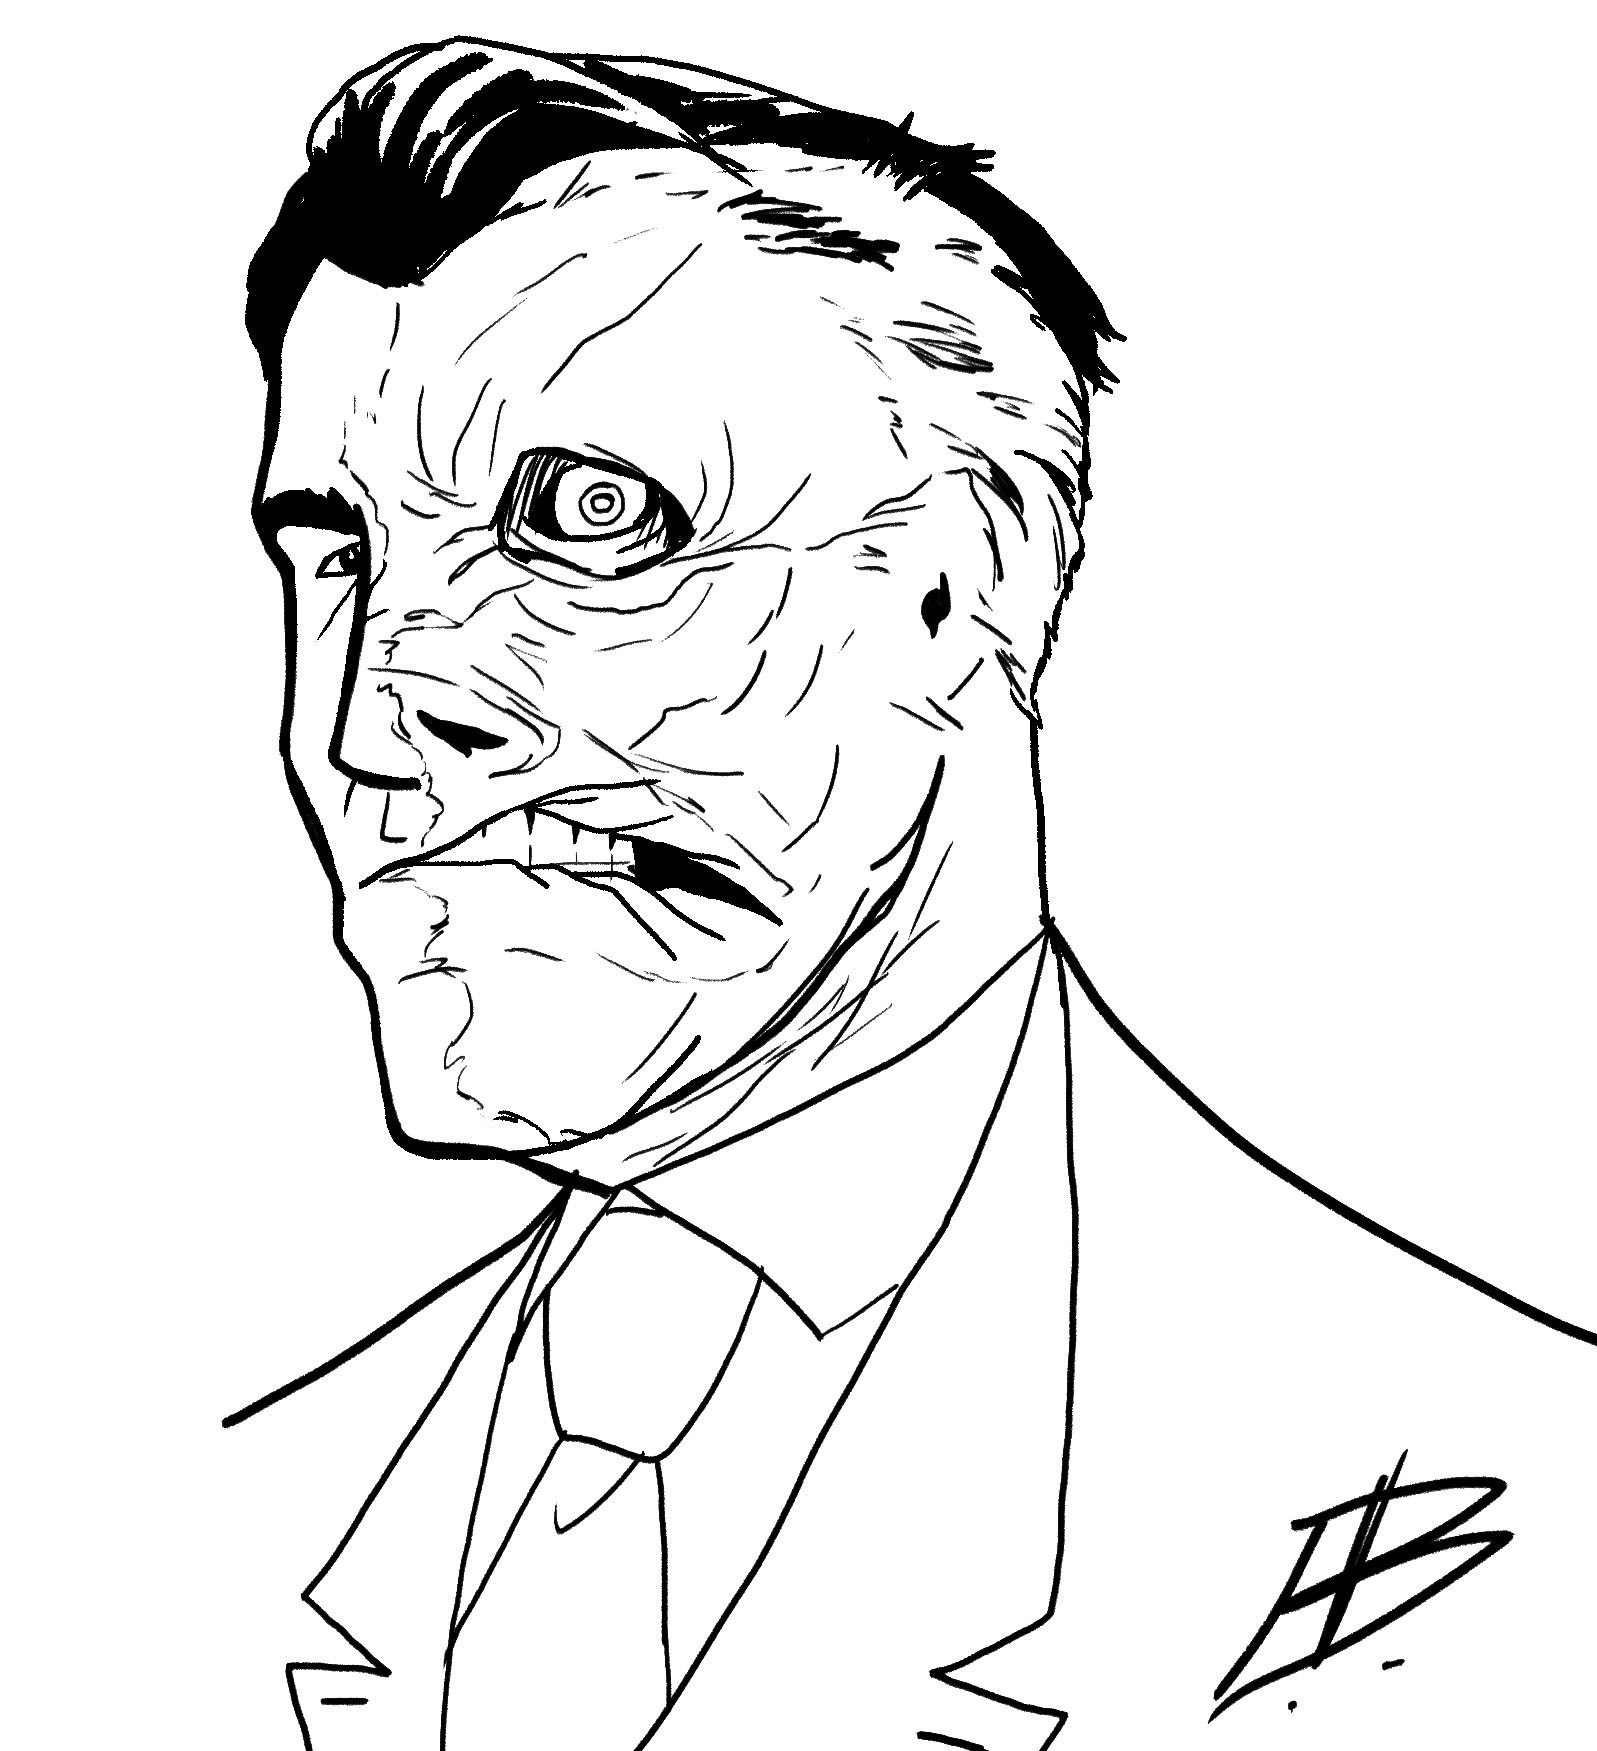 Elliot balson two face